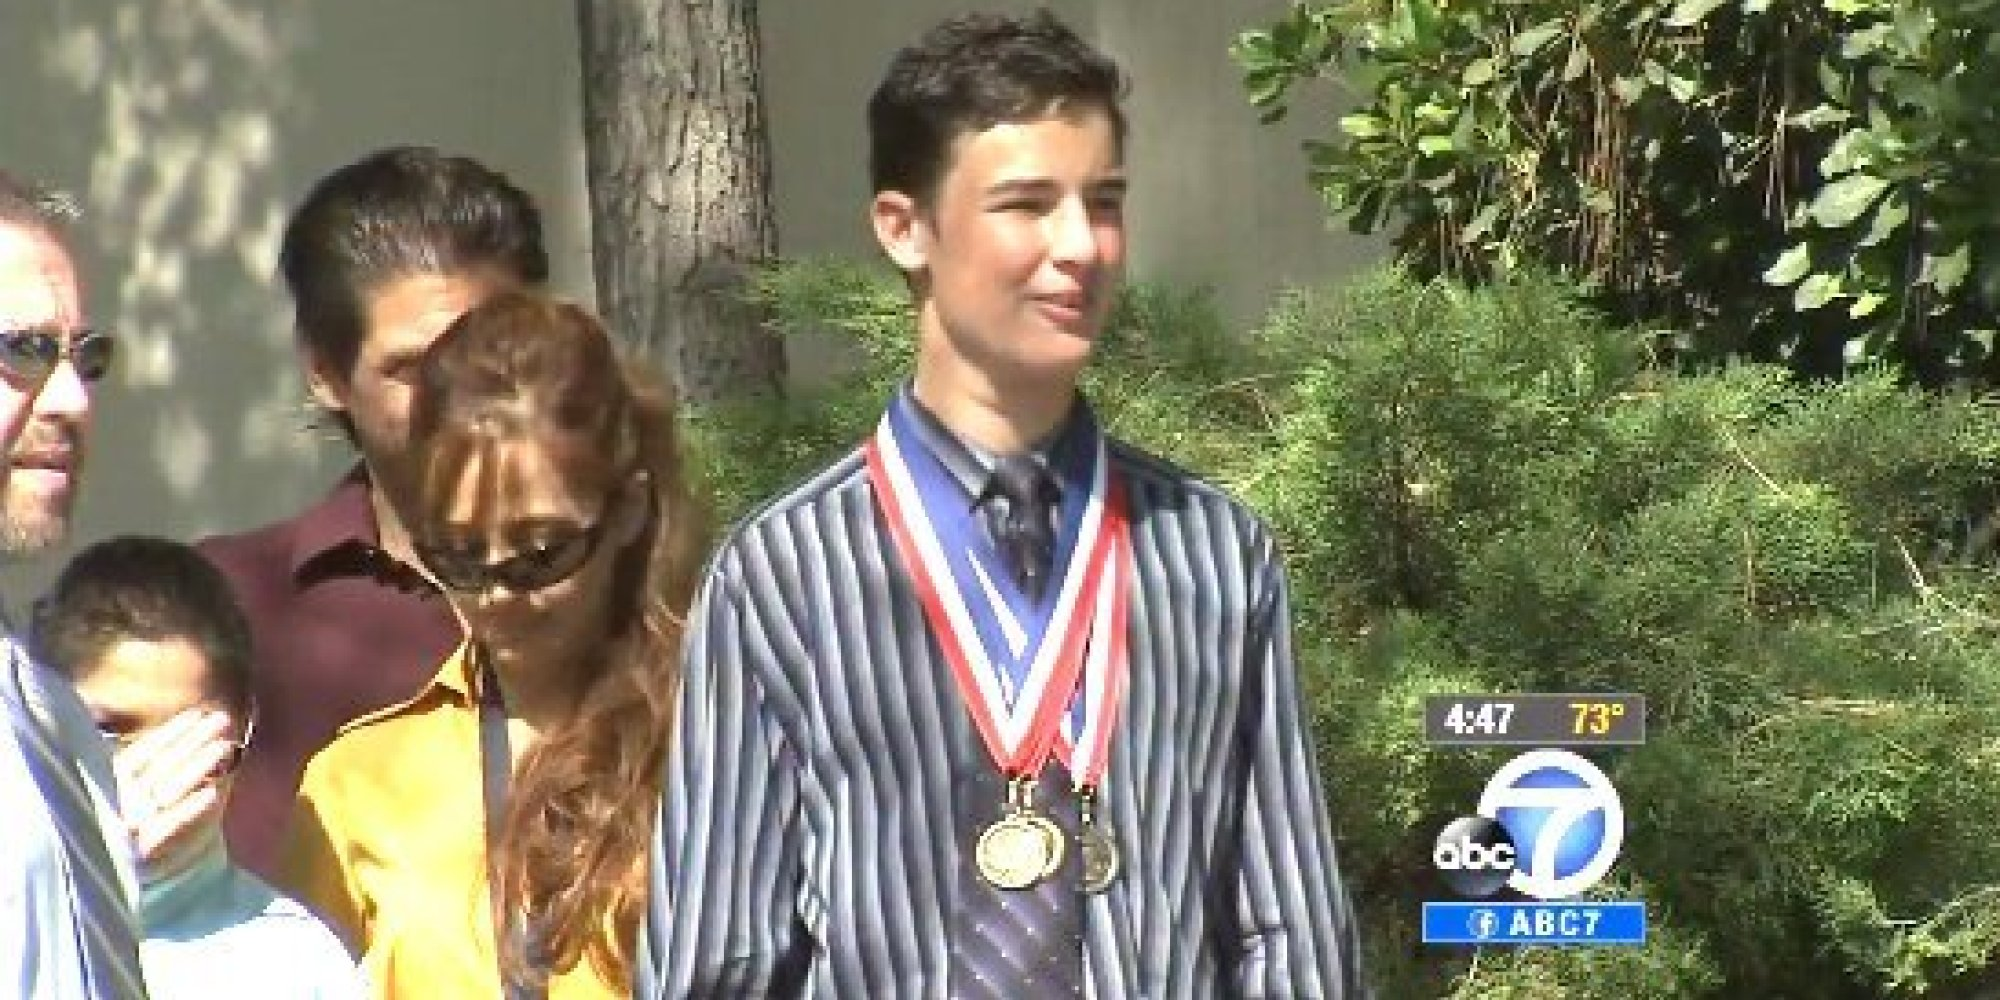 Non-Verbal Teen With Autism Says 'No One Can Place Limits' On You In Moving Graduation Speech